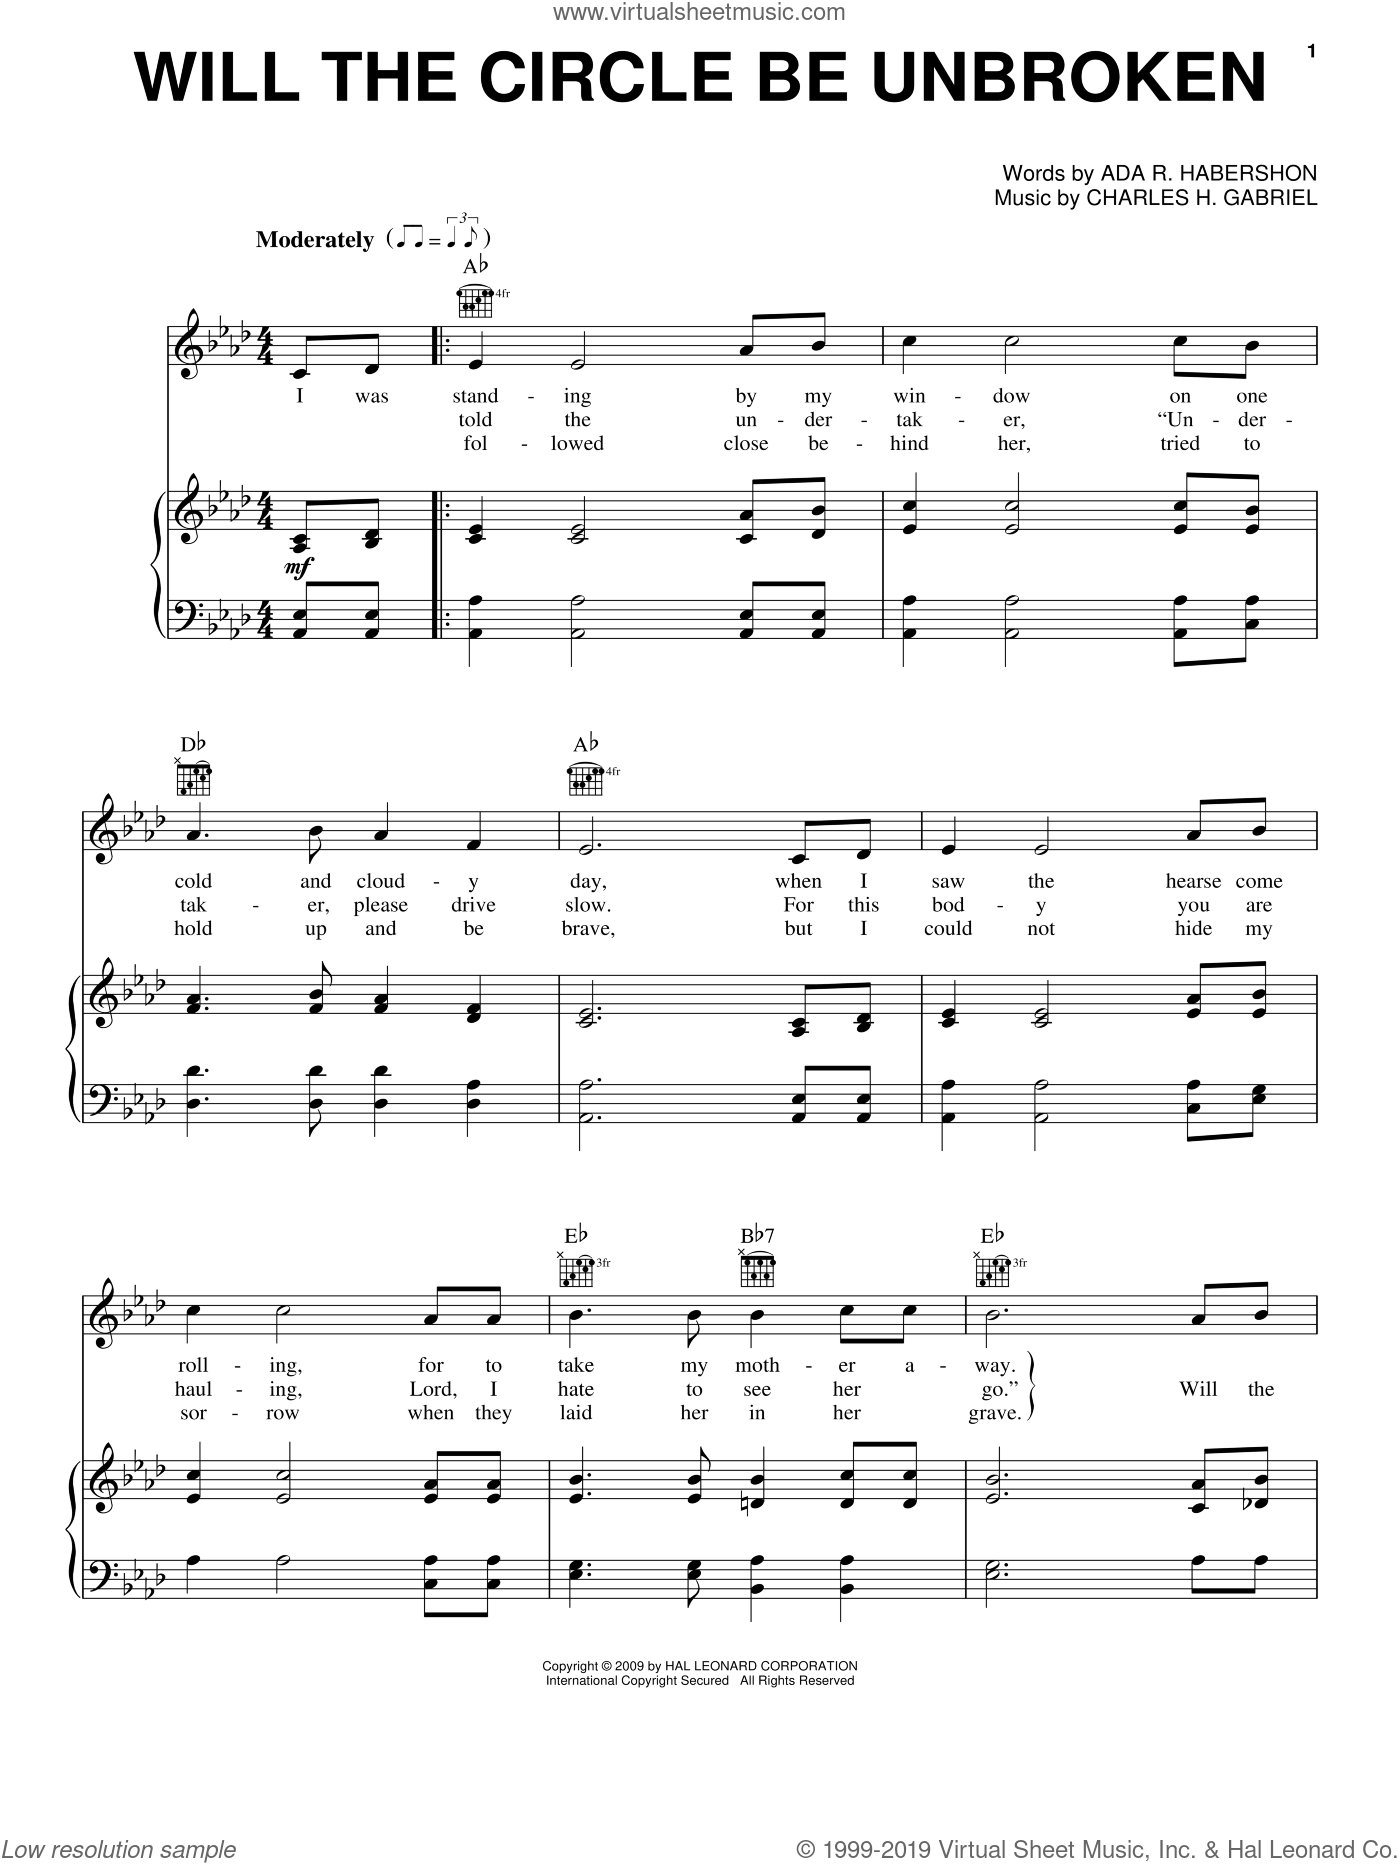 Will The Circle Be Unbroken sheet music for voice, piano or guitar by Ada R. Habershon